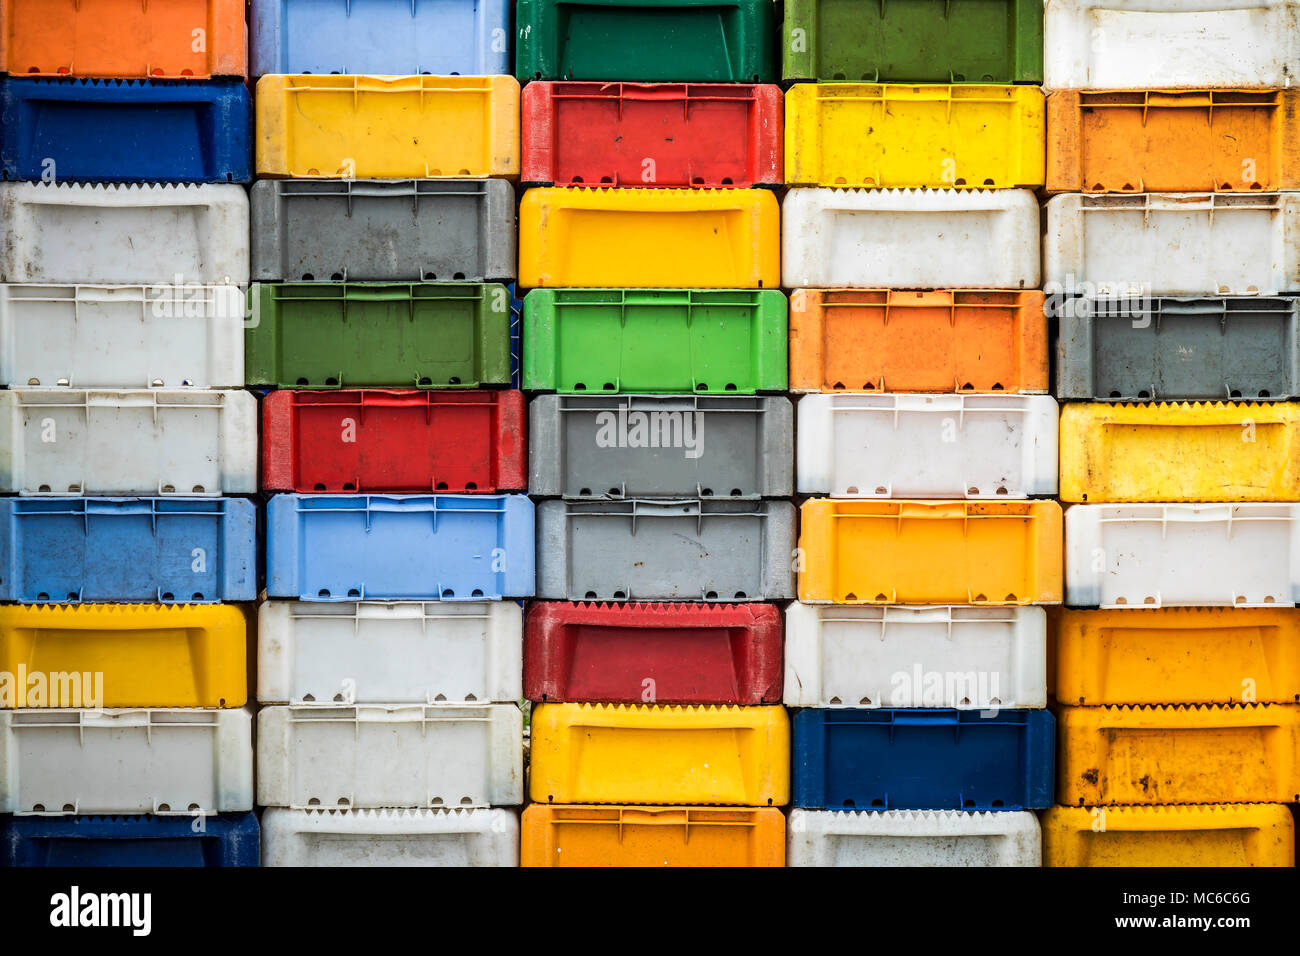 Stacked returnable boxes of fish in various colors. - Stock Image